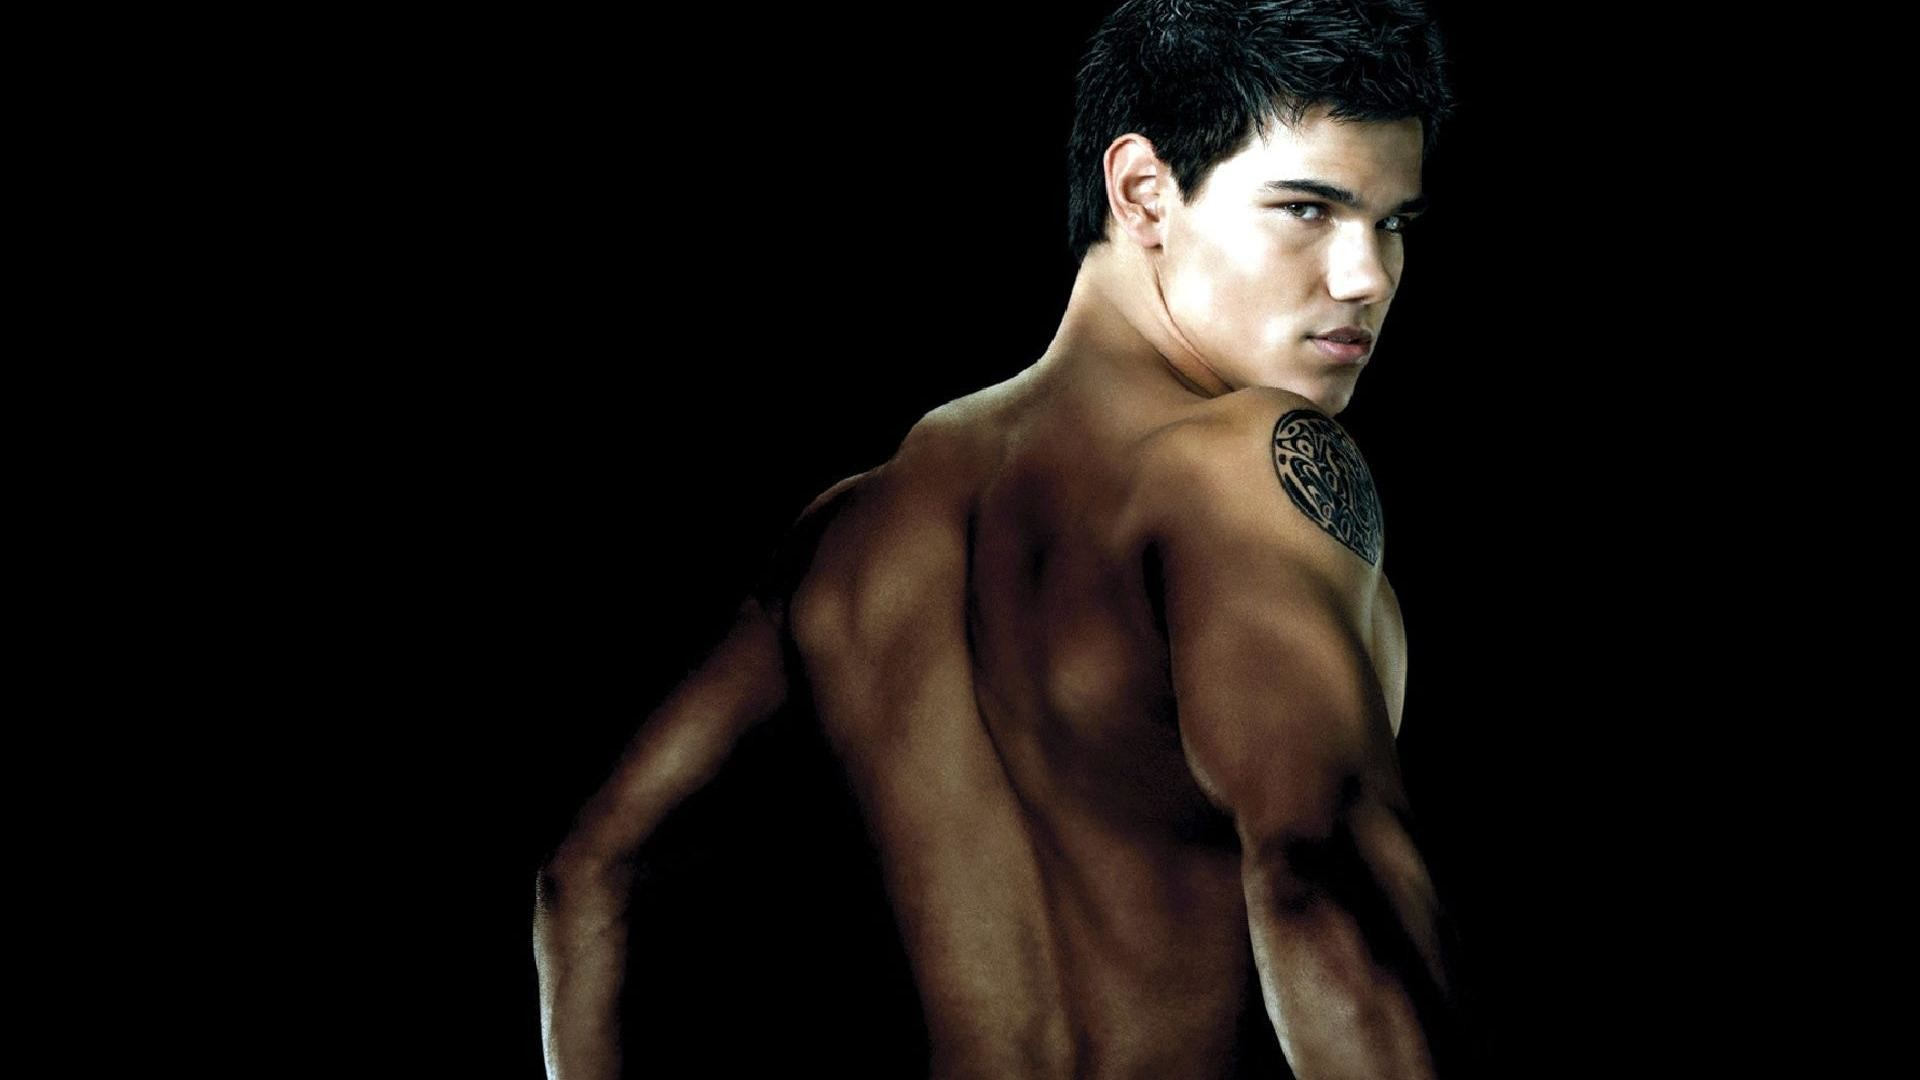 1920x1080 Taylor Lautner Shirtless Wallpaper Desktop Images & Pictures - Becuo